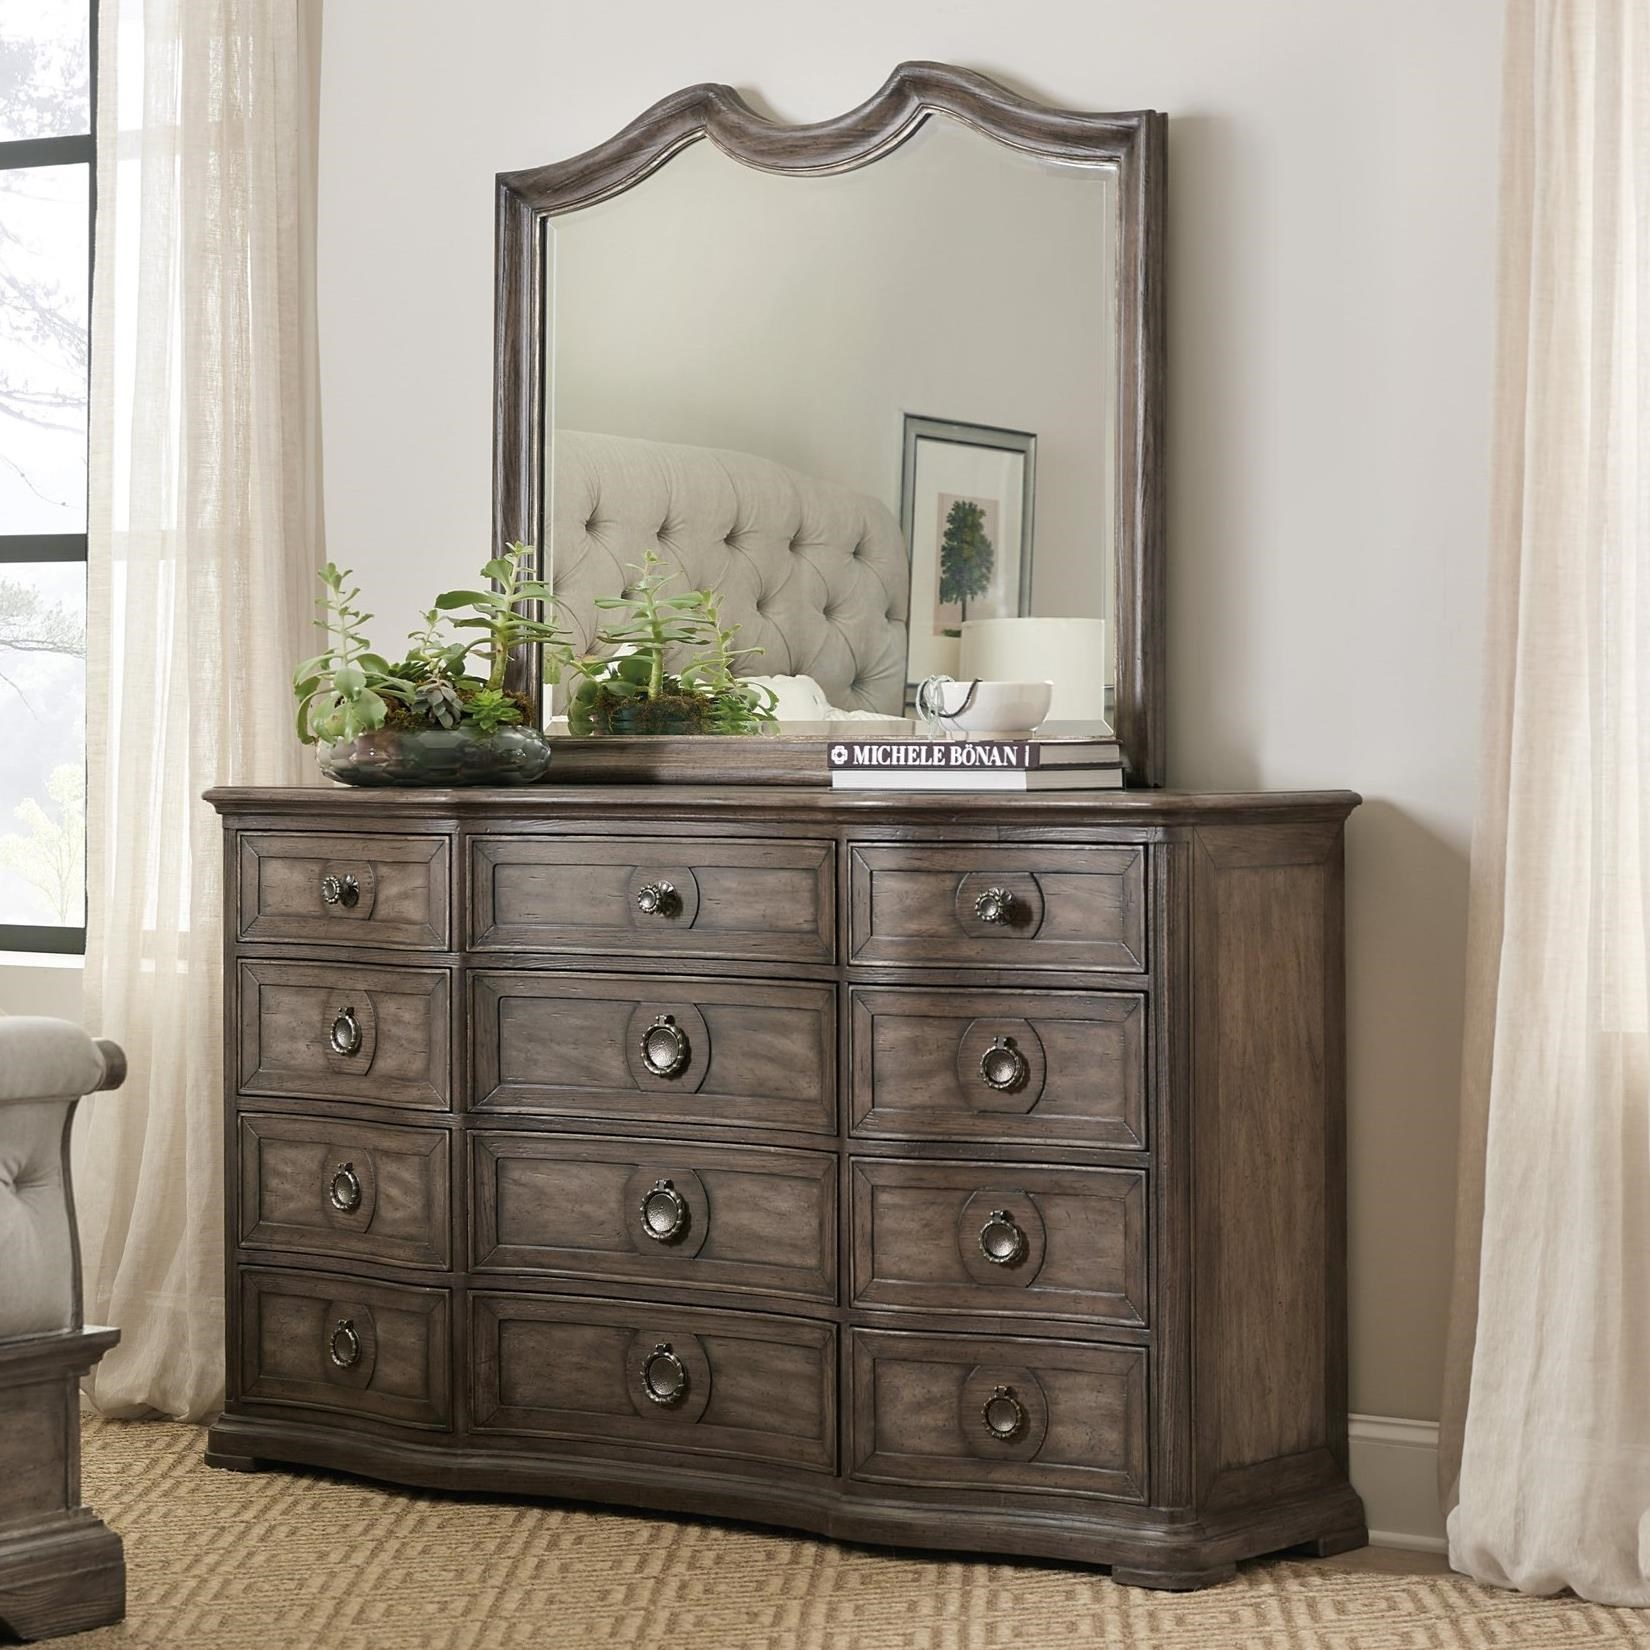 Woodlands Dresser and Mirror Set by Hooker Furniture at Alison Craig Home Furnishings